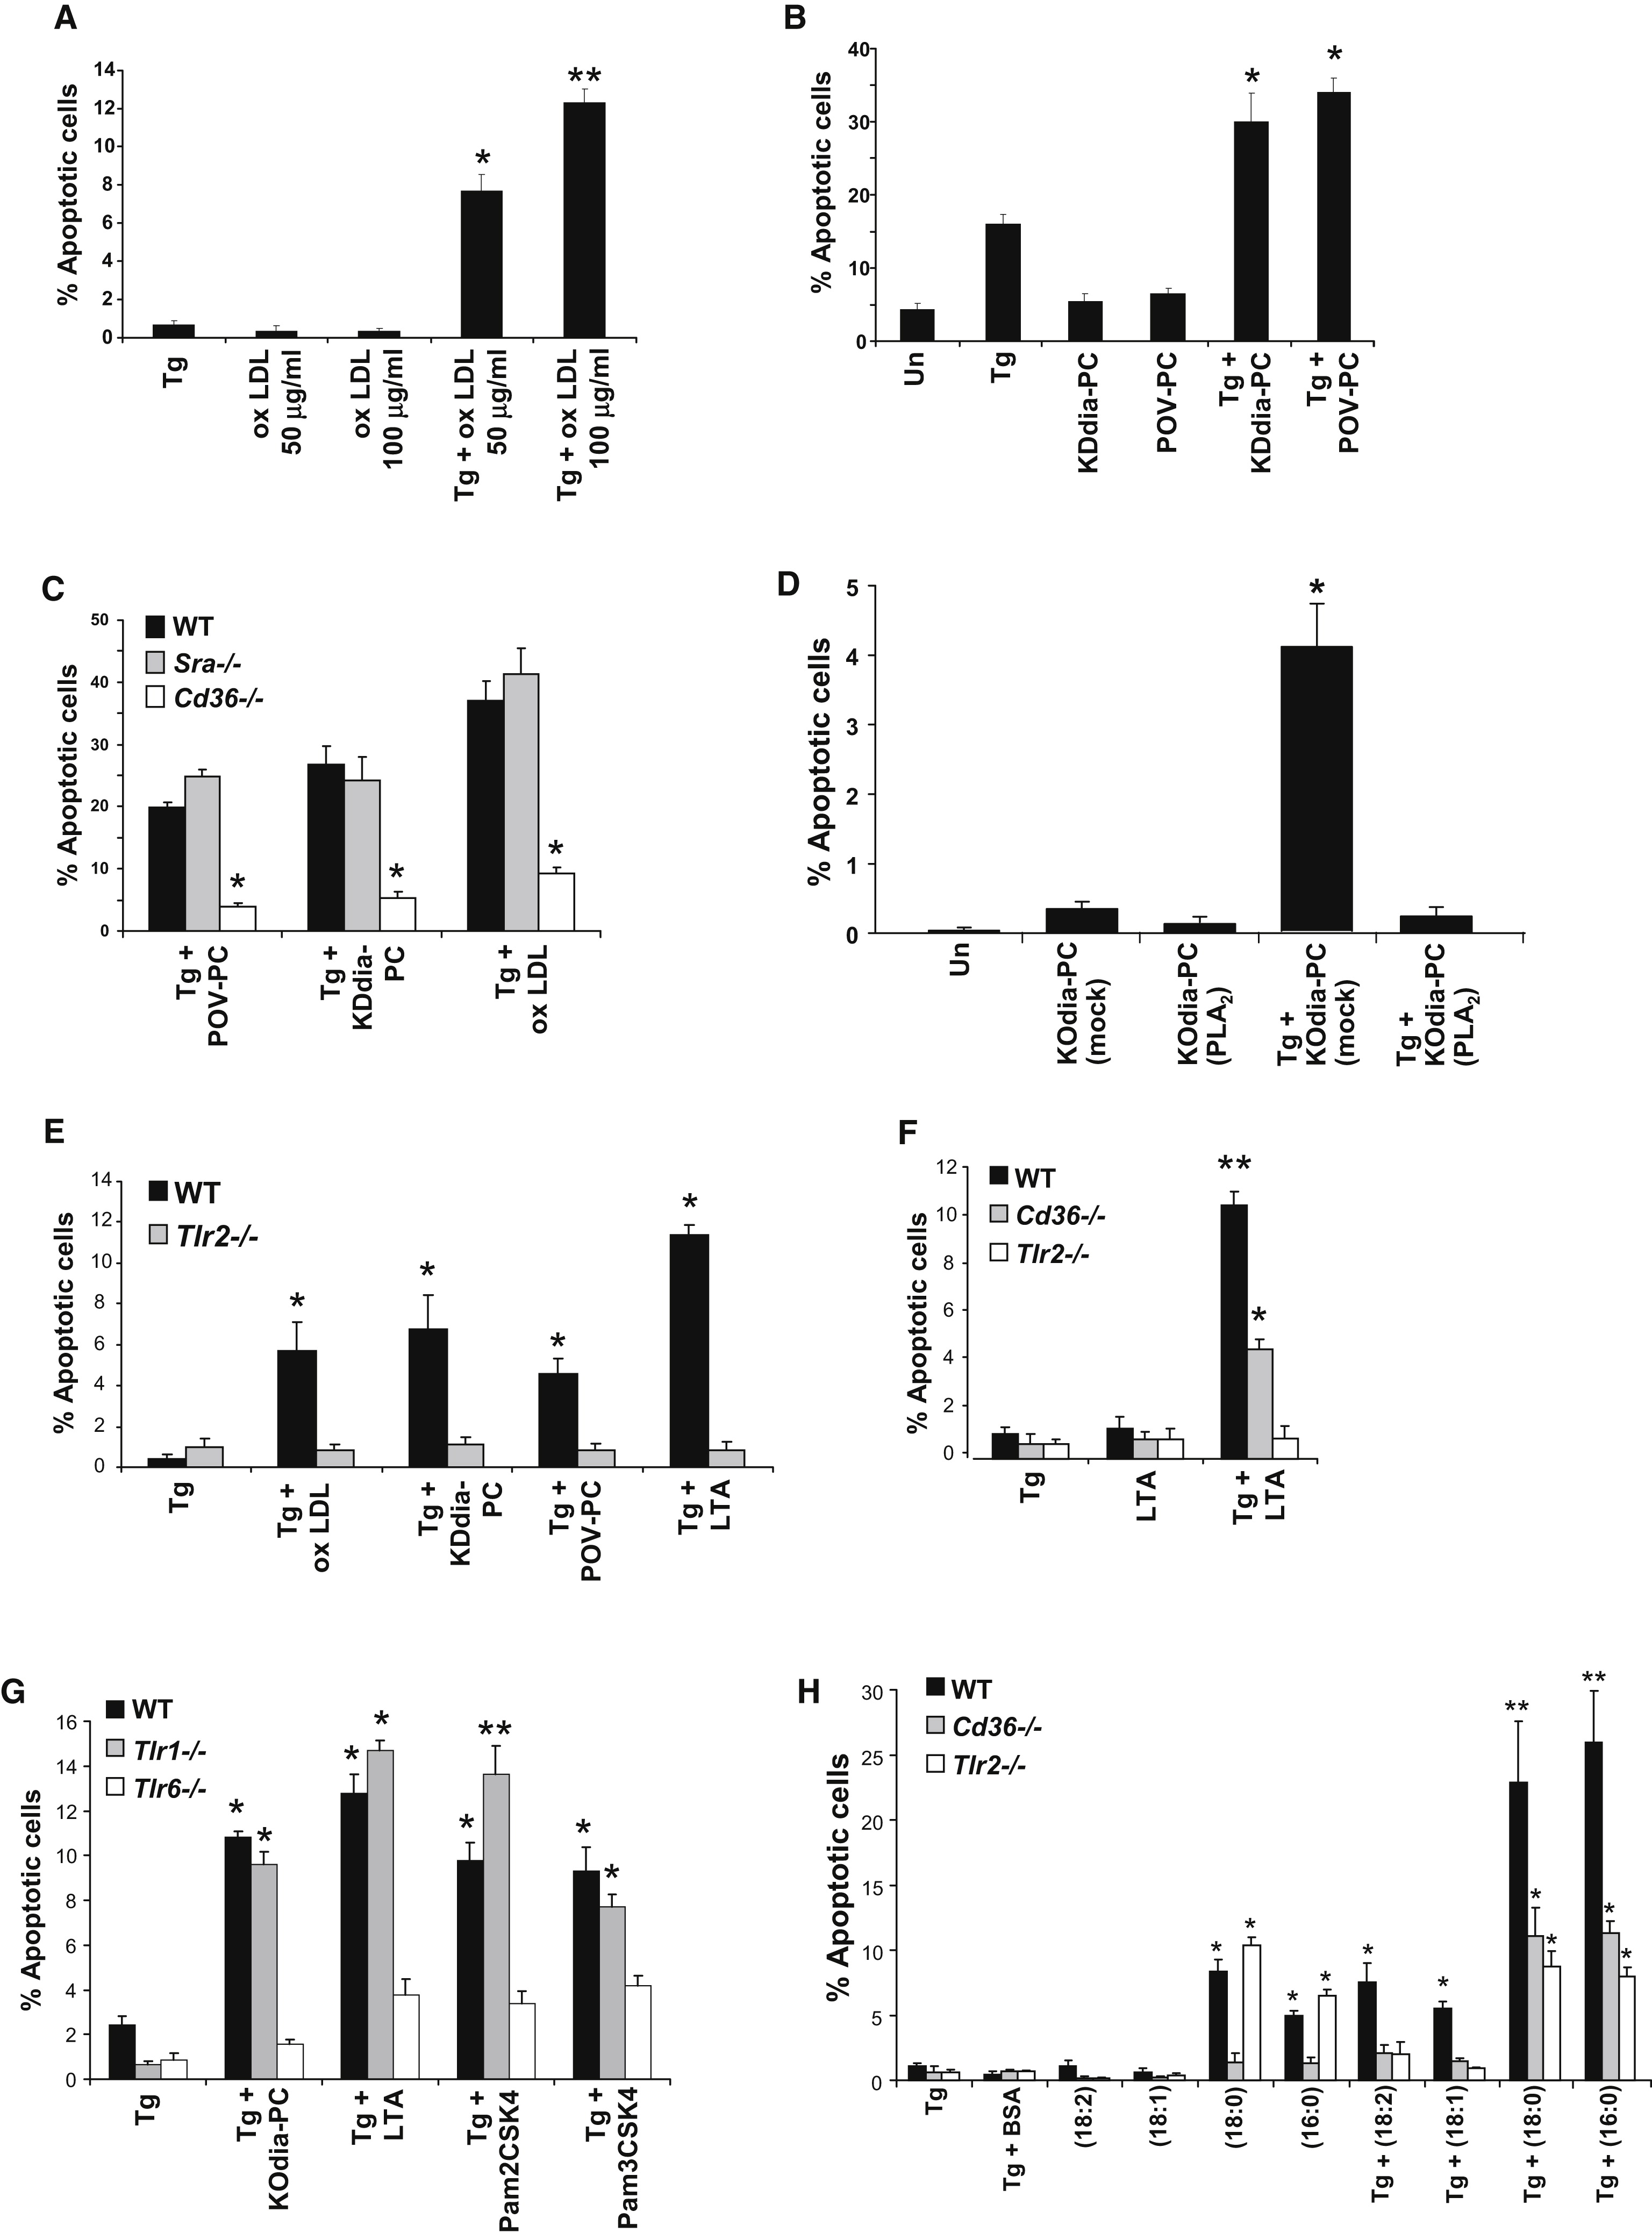 Atherogenic Lipids and Lipoproteins Trigger CD36-TLR2